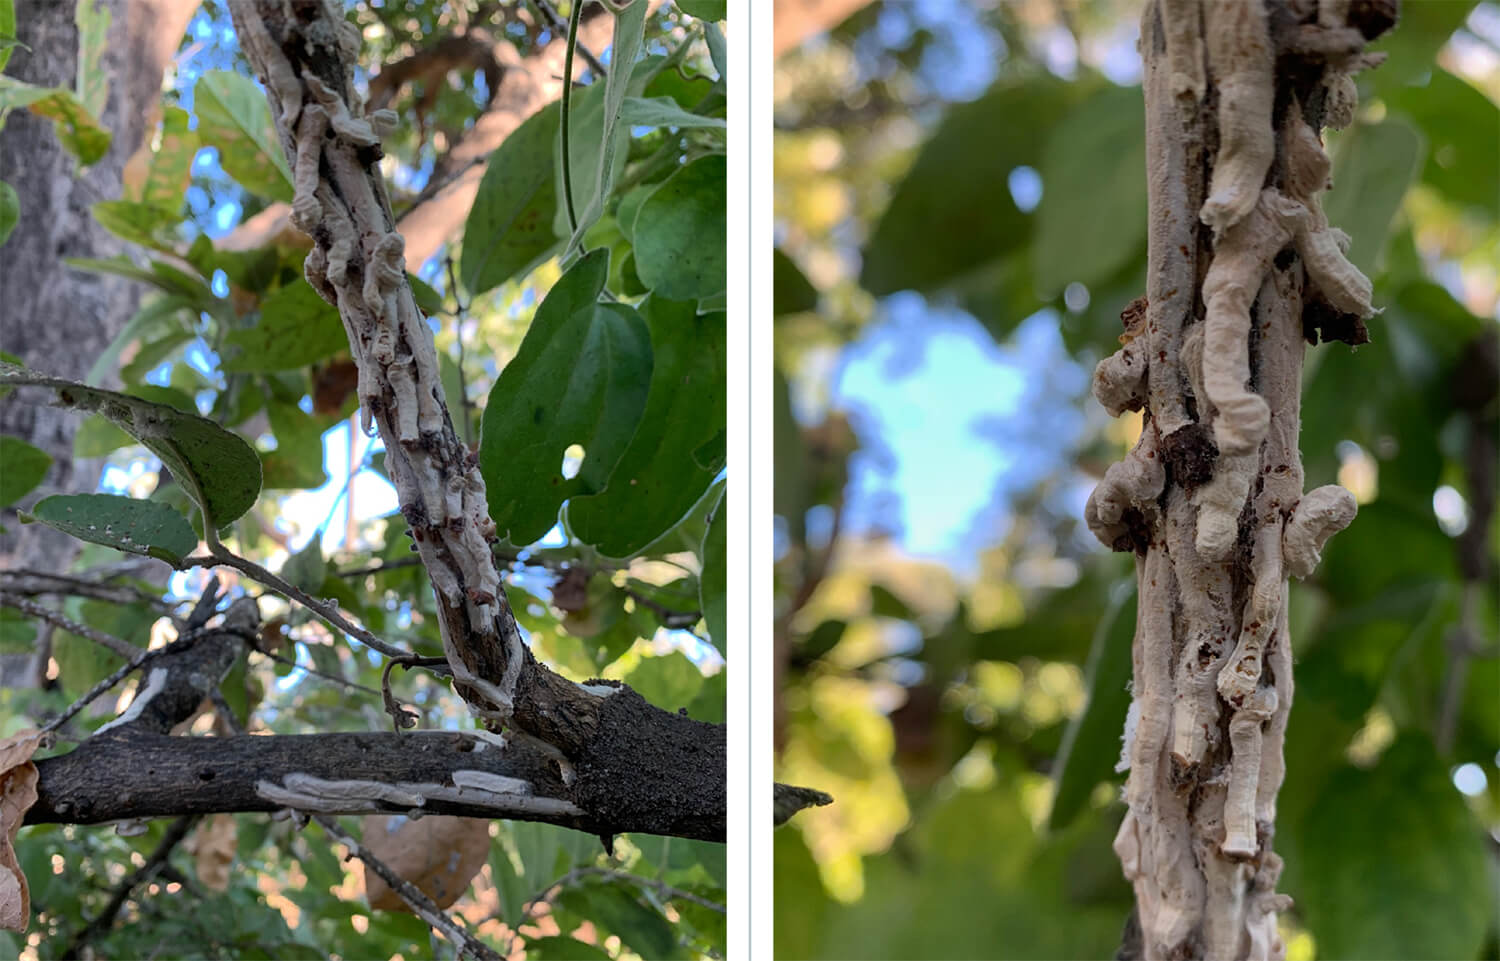 2 images of Bagworms nesting in a tree near PJ's tent